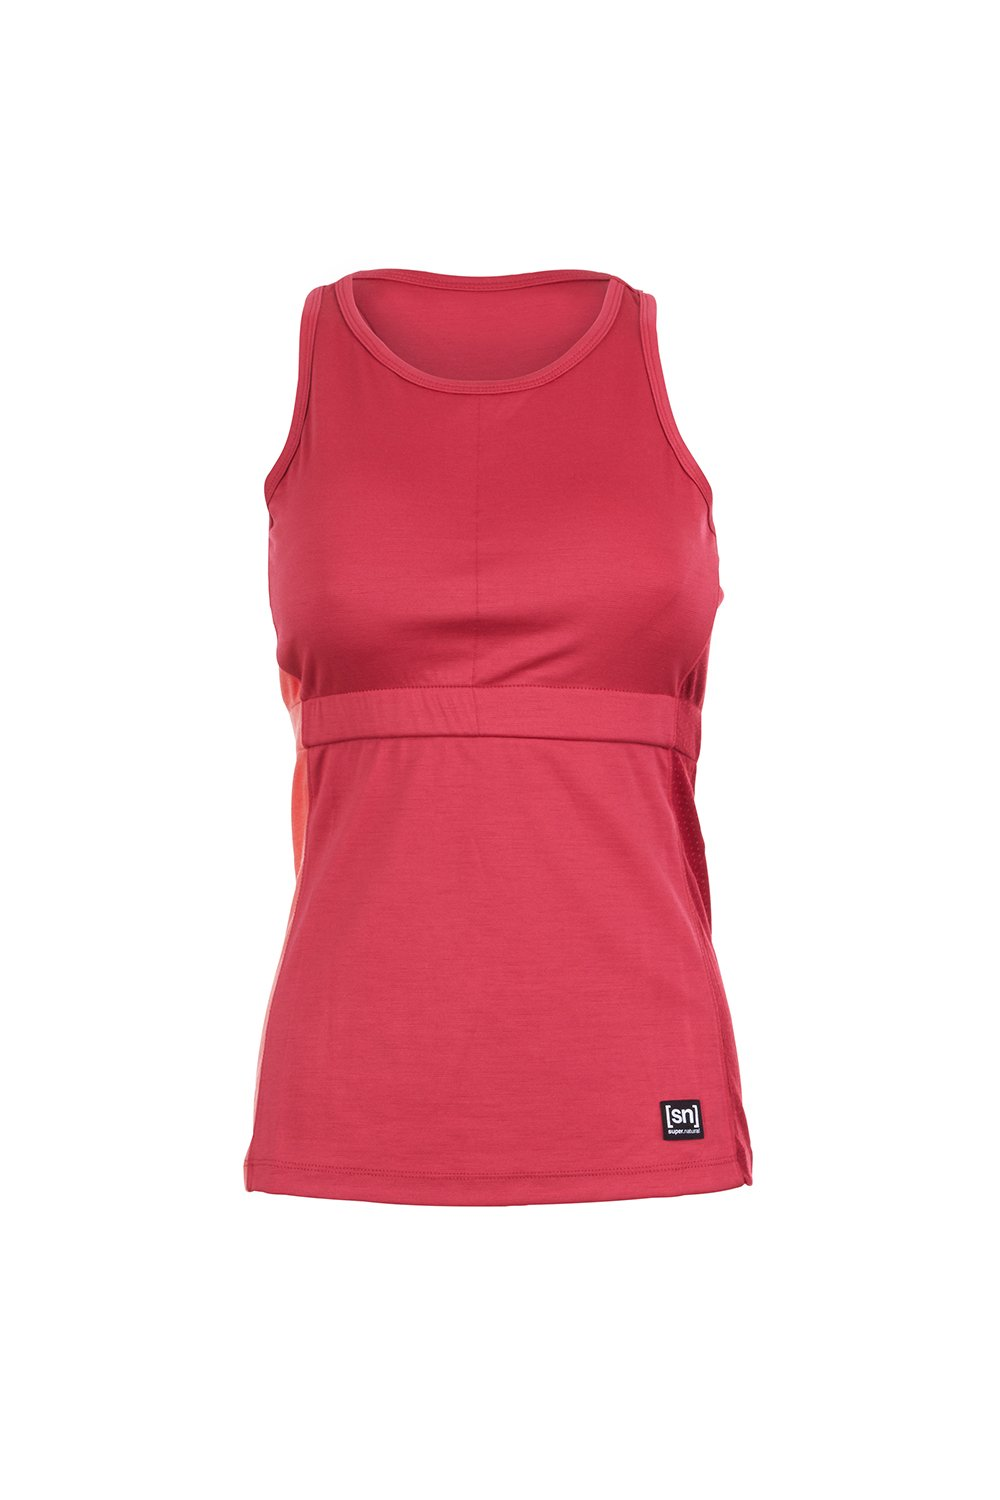 super. natural W Active Block Top Merino Women's Tank Top, Womens super.natural